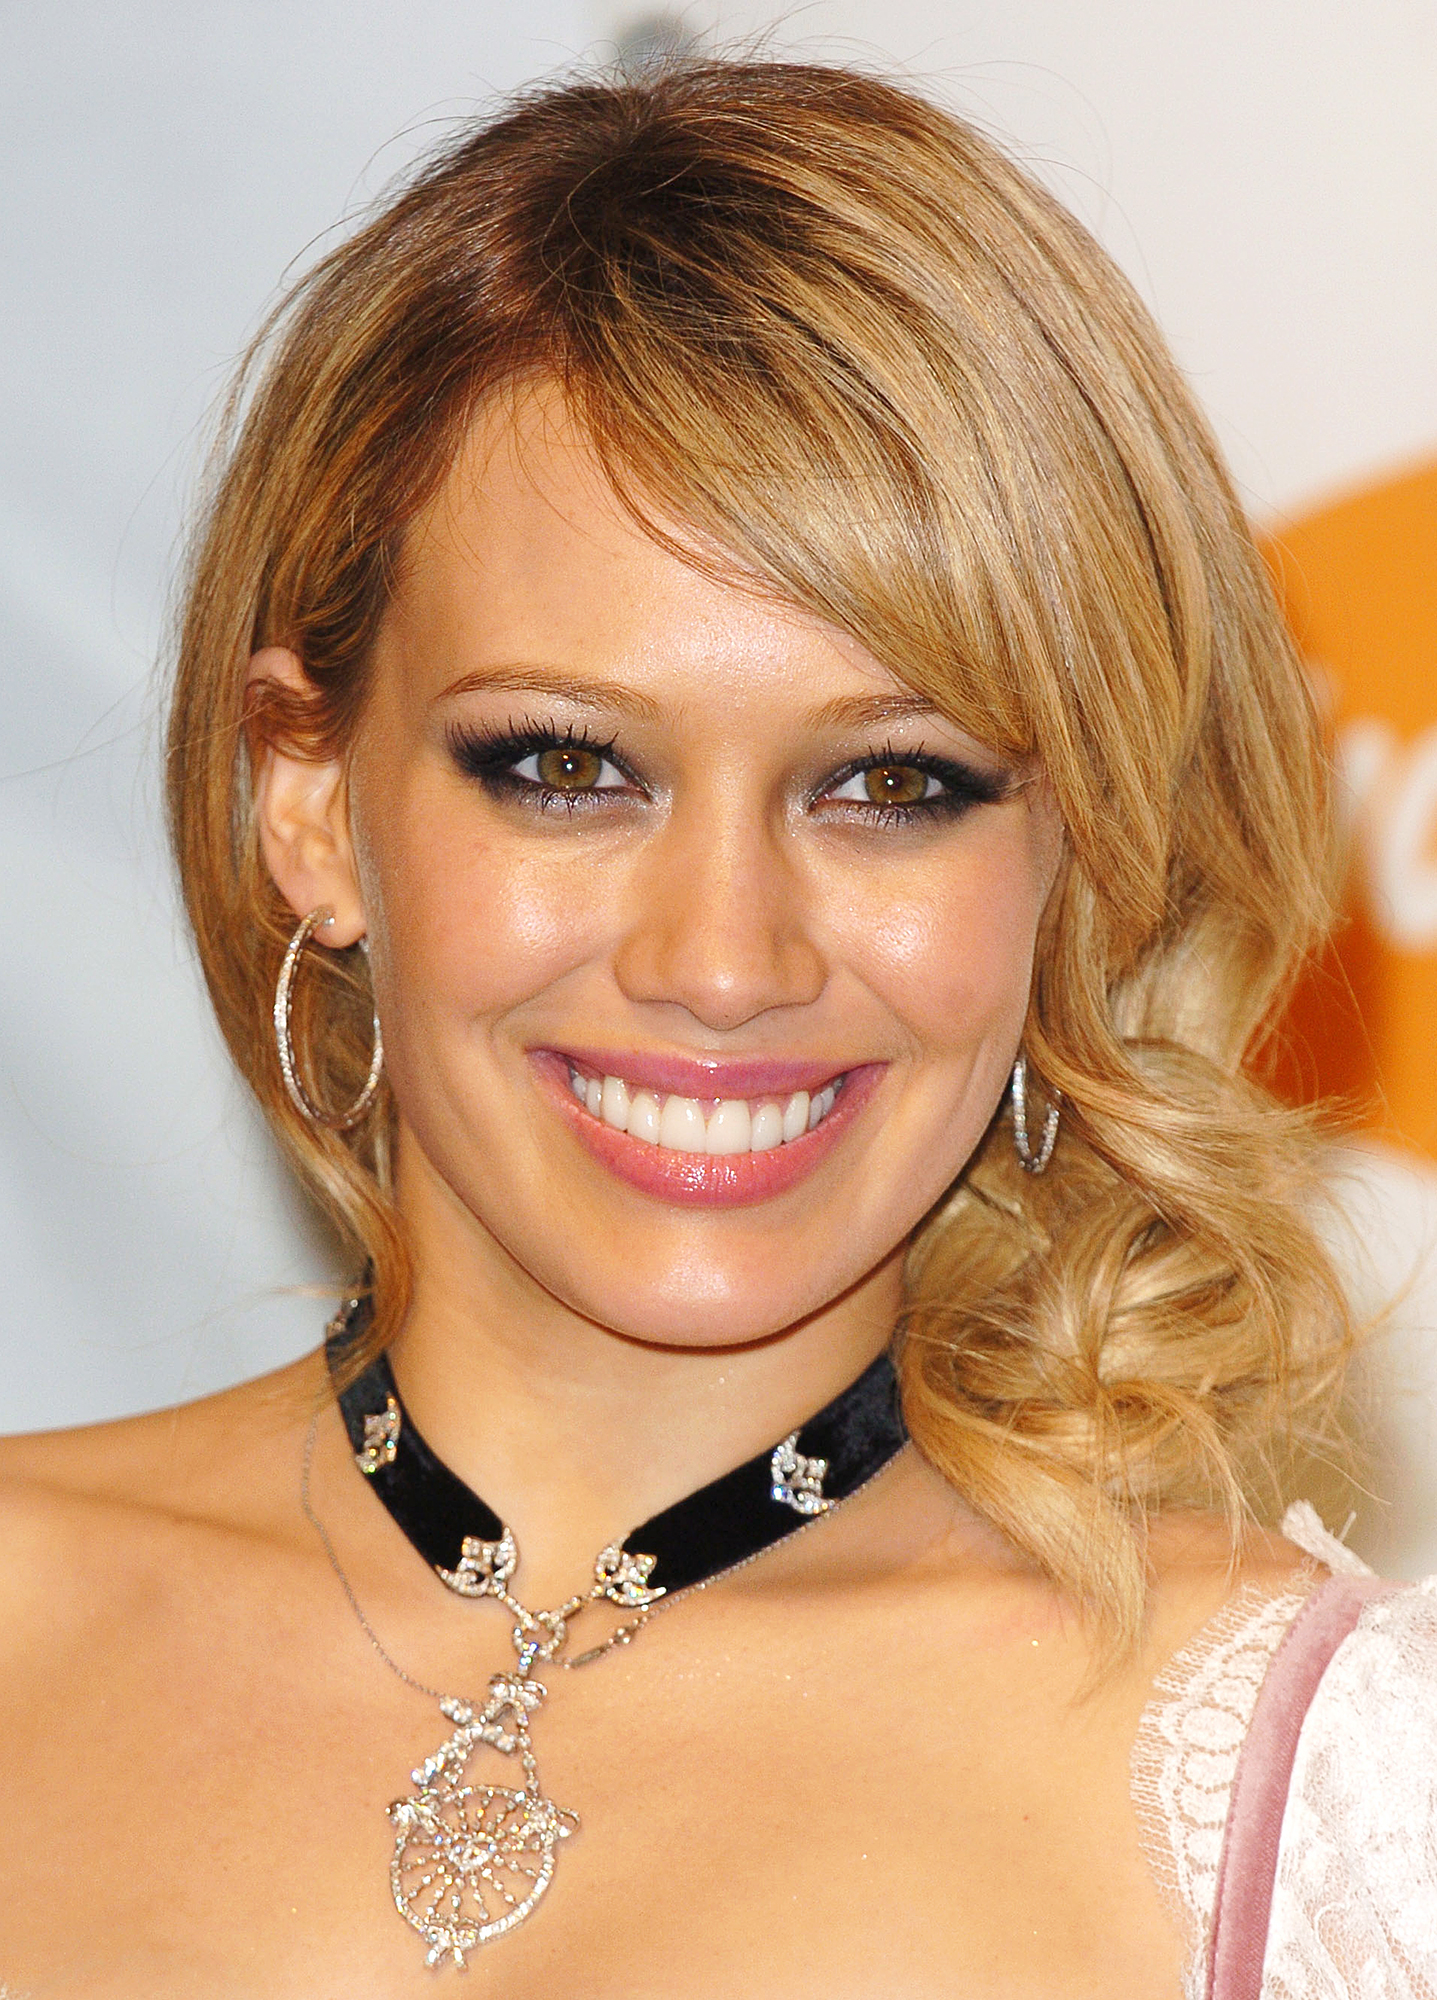 Hilary Duff Through The Years 2005 - Duff debuted a noticeably fuller smile in April 2005.